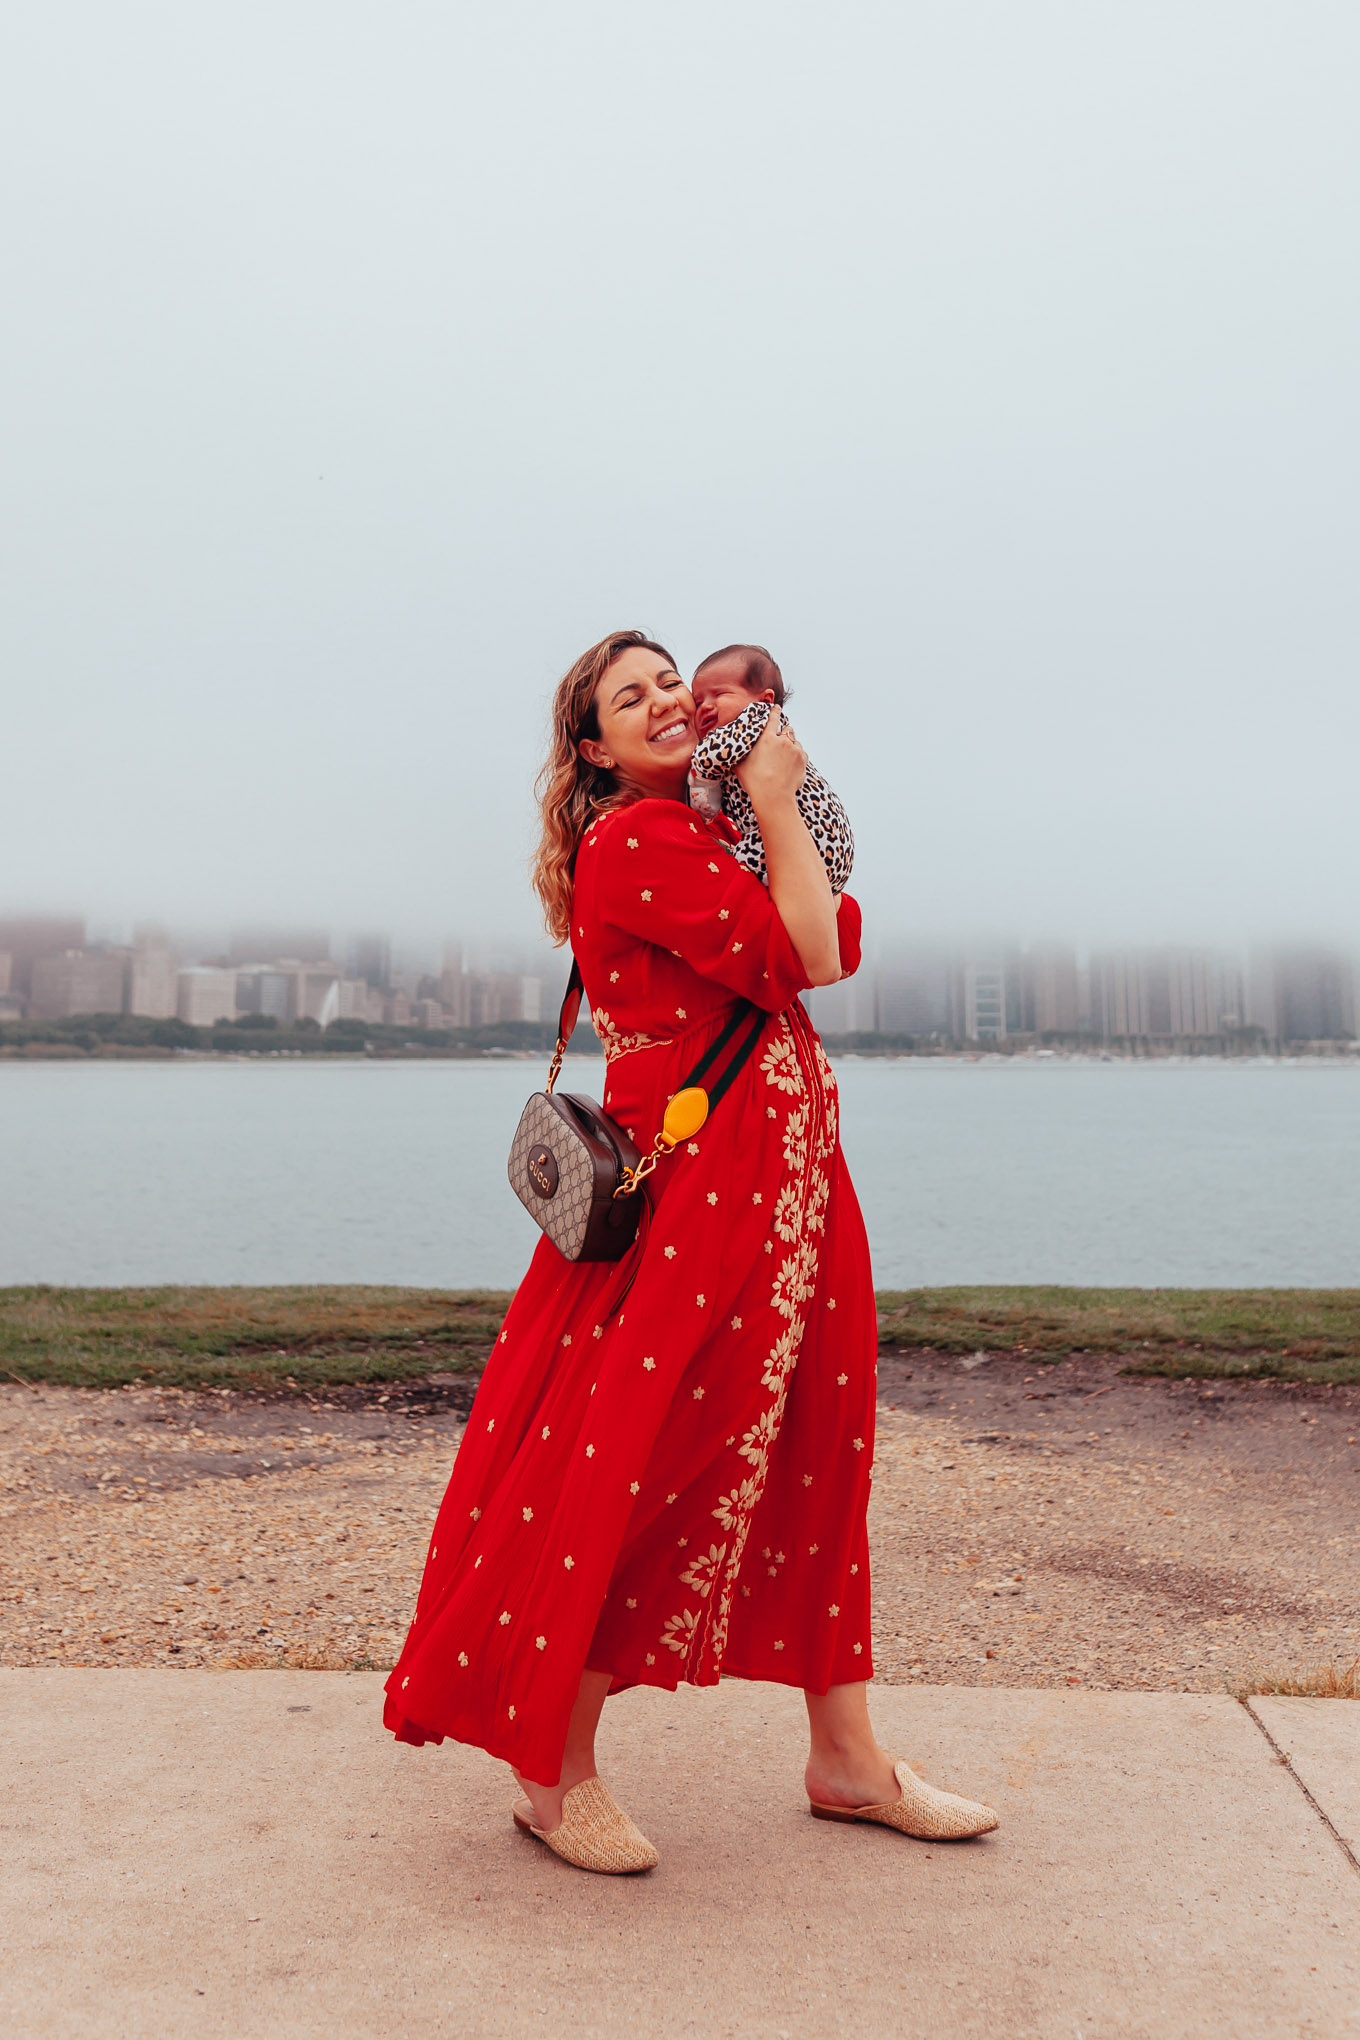 My New Mom Morning Routine by popular Chicago mom blog, Glass of Glam: image of a mom walking outside with her newborn baby and wearing an Anthropologie Embroidered Fable Midi Dress, STEVE MADDEN MATTIS MULE, Gucci GG Supreme messenger bag, and Little Me Leopard Footie.